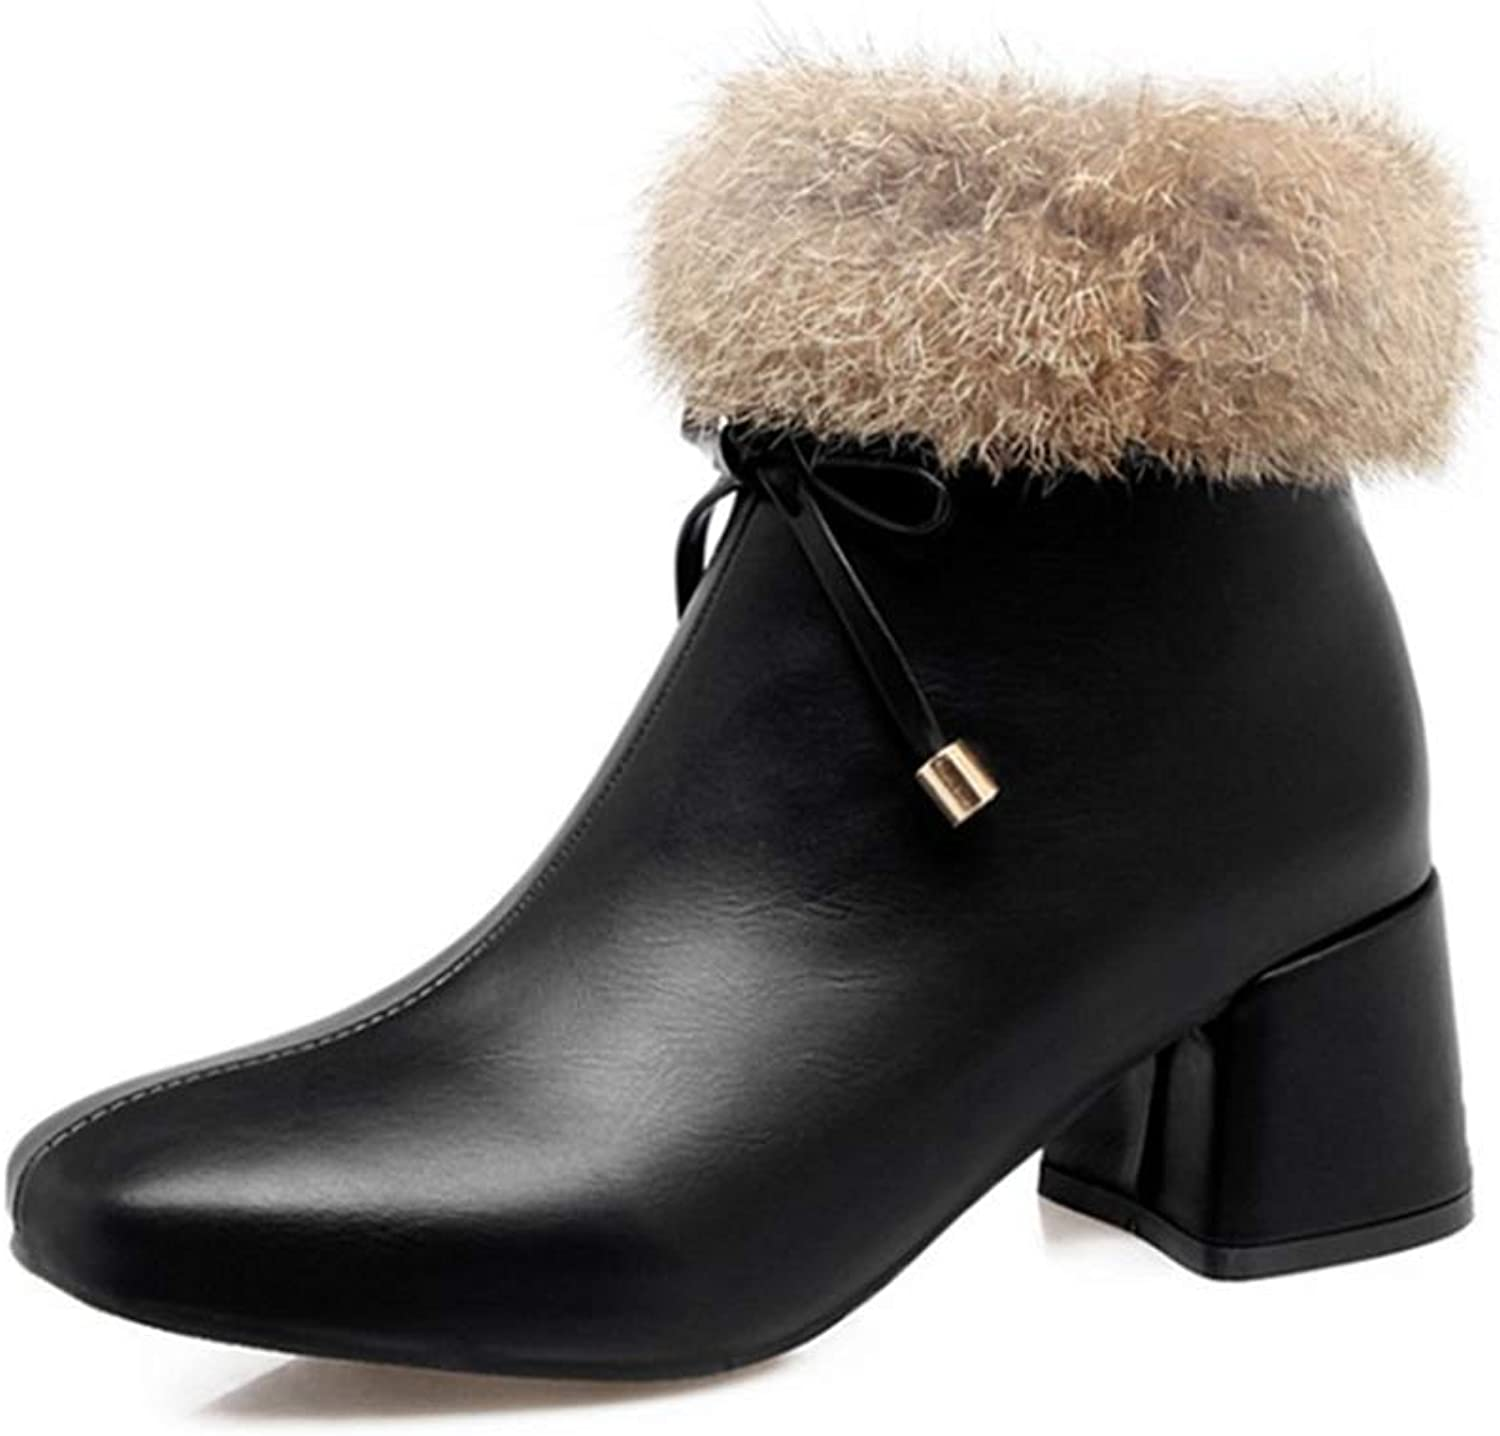 GIY Women's Square Toe Fur Ankle Boots Fashion Fringed Chunky Mid Heel Zip Winter Warm Dress Short Booties